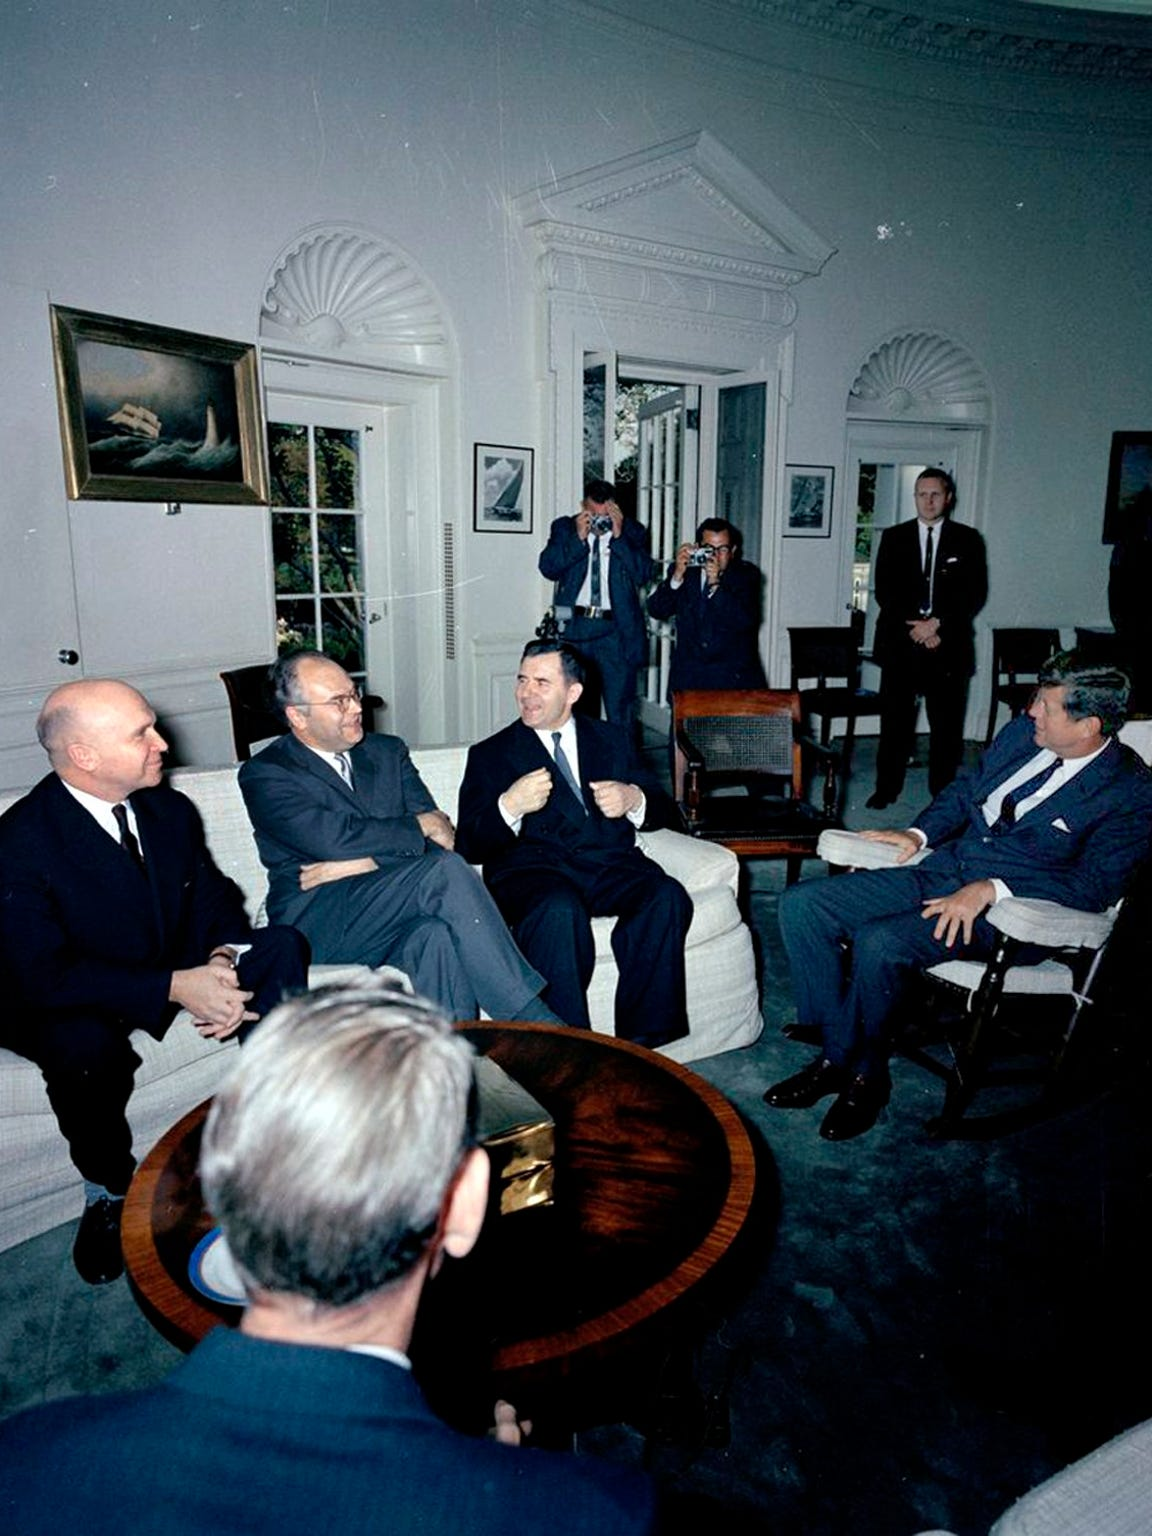 White House Secret Service agent Frank Yeager stands